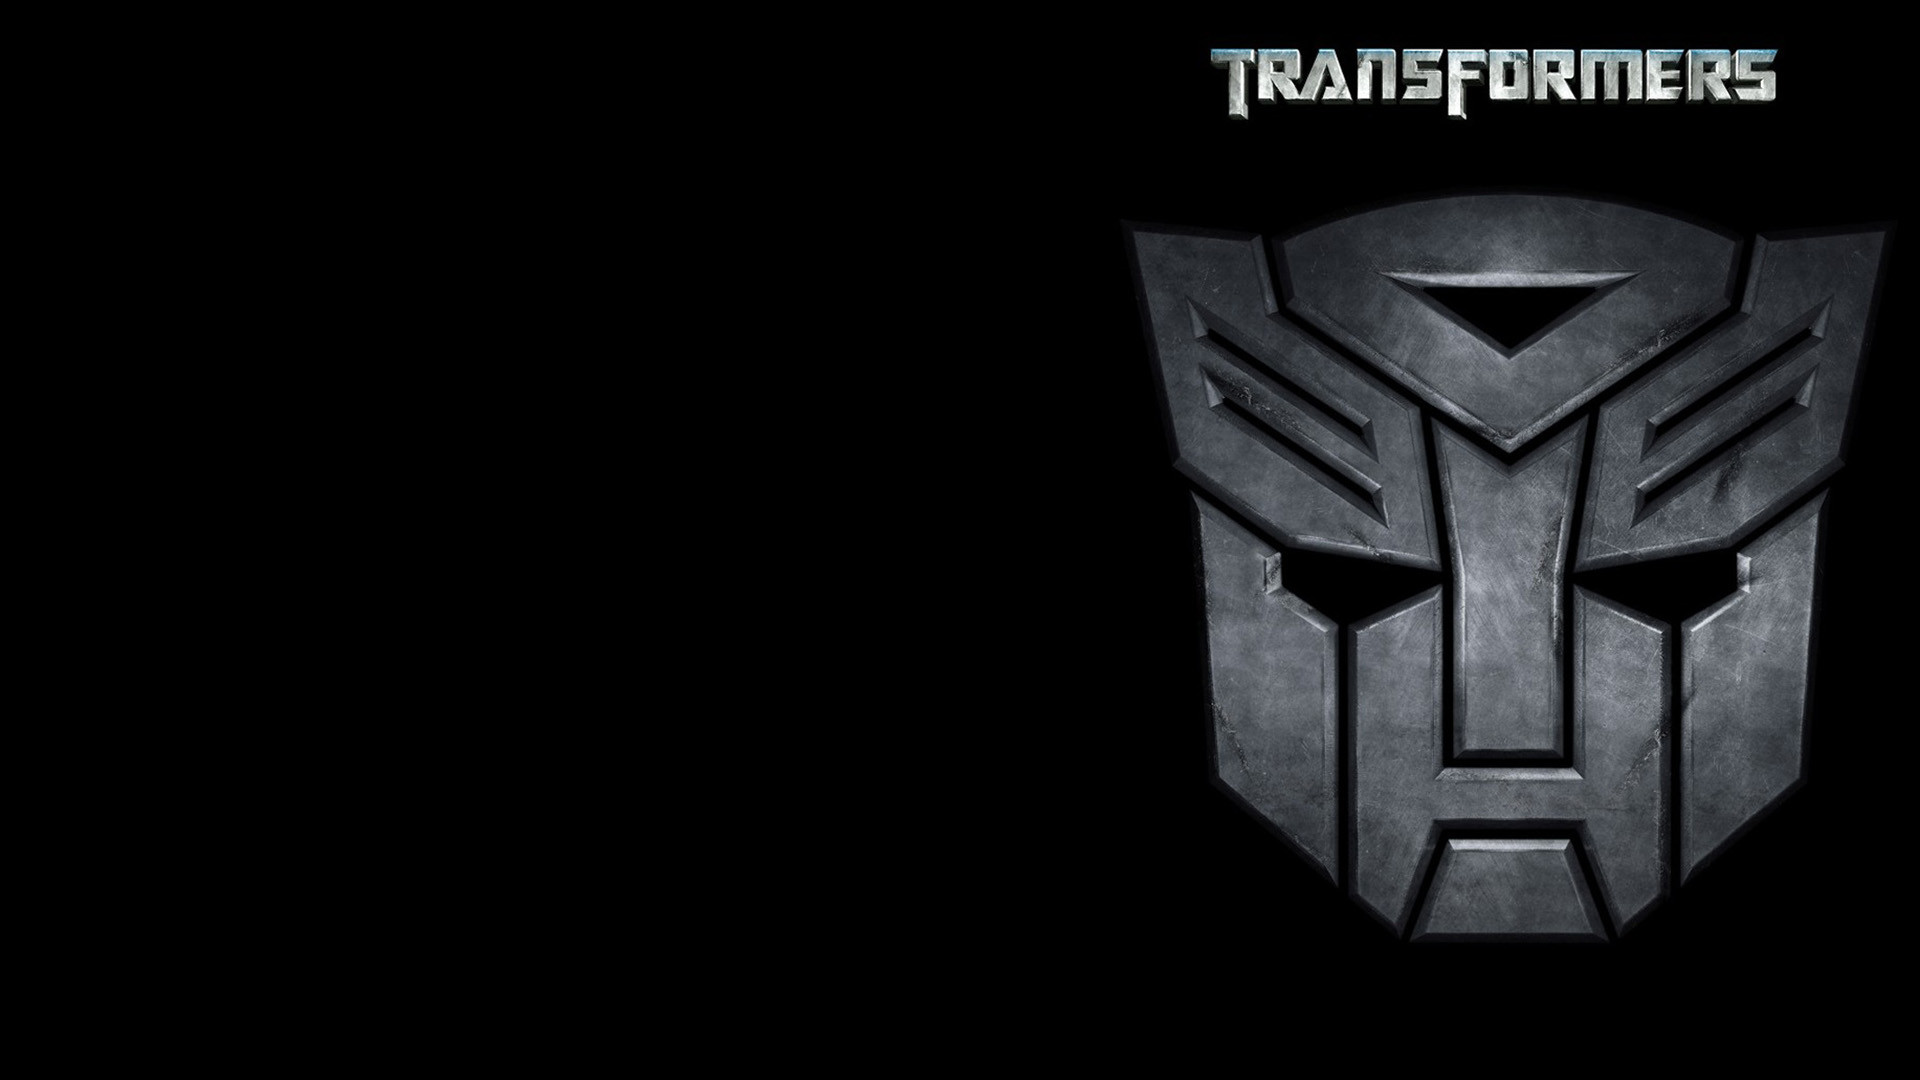 1920x1080 Transformers Autobot Desktop Wallpaper 50882